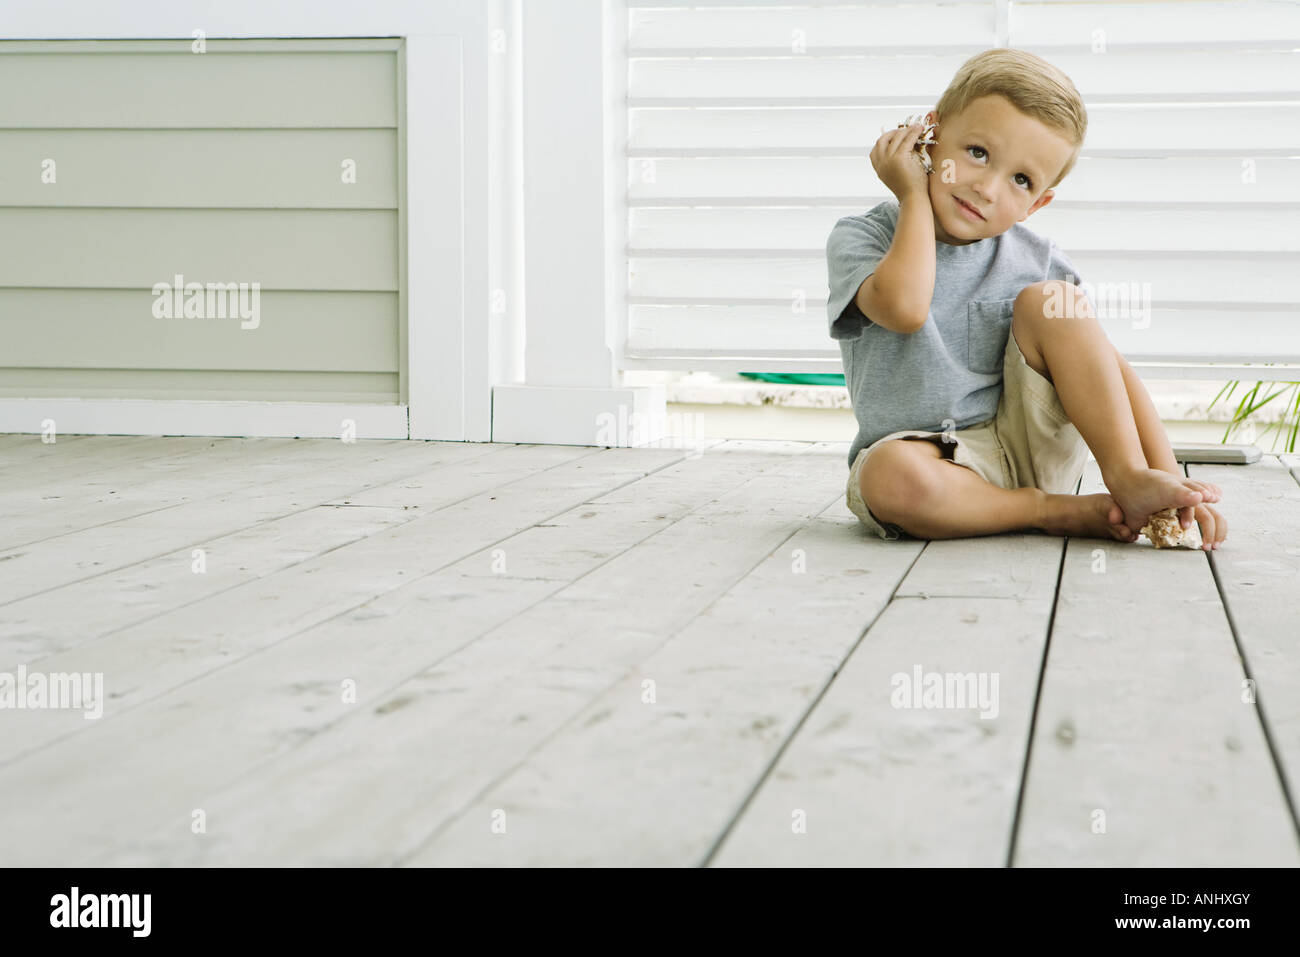 Boy sitting on the ground listening to seashell, smiling - Stock Image